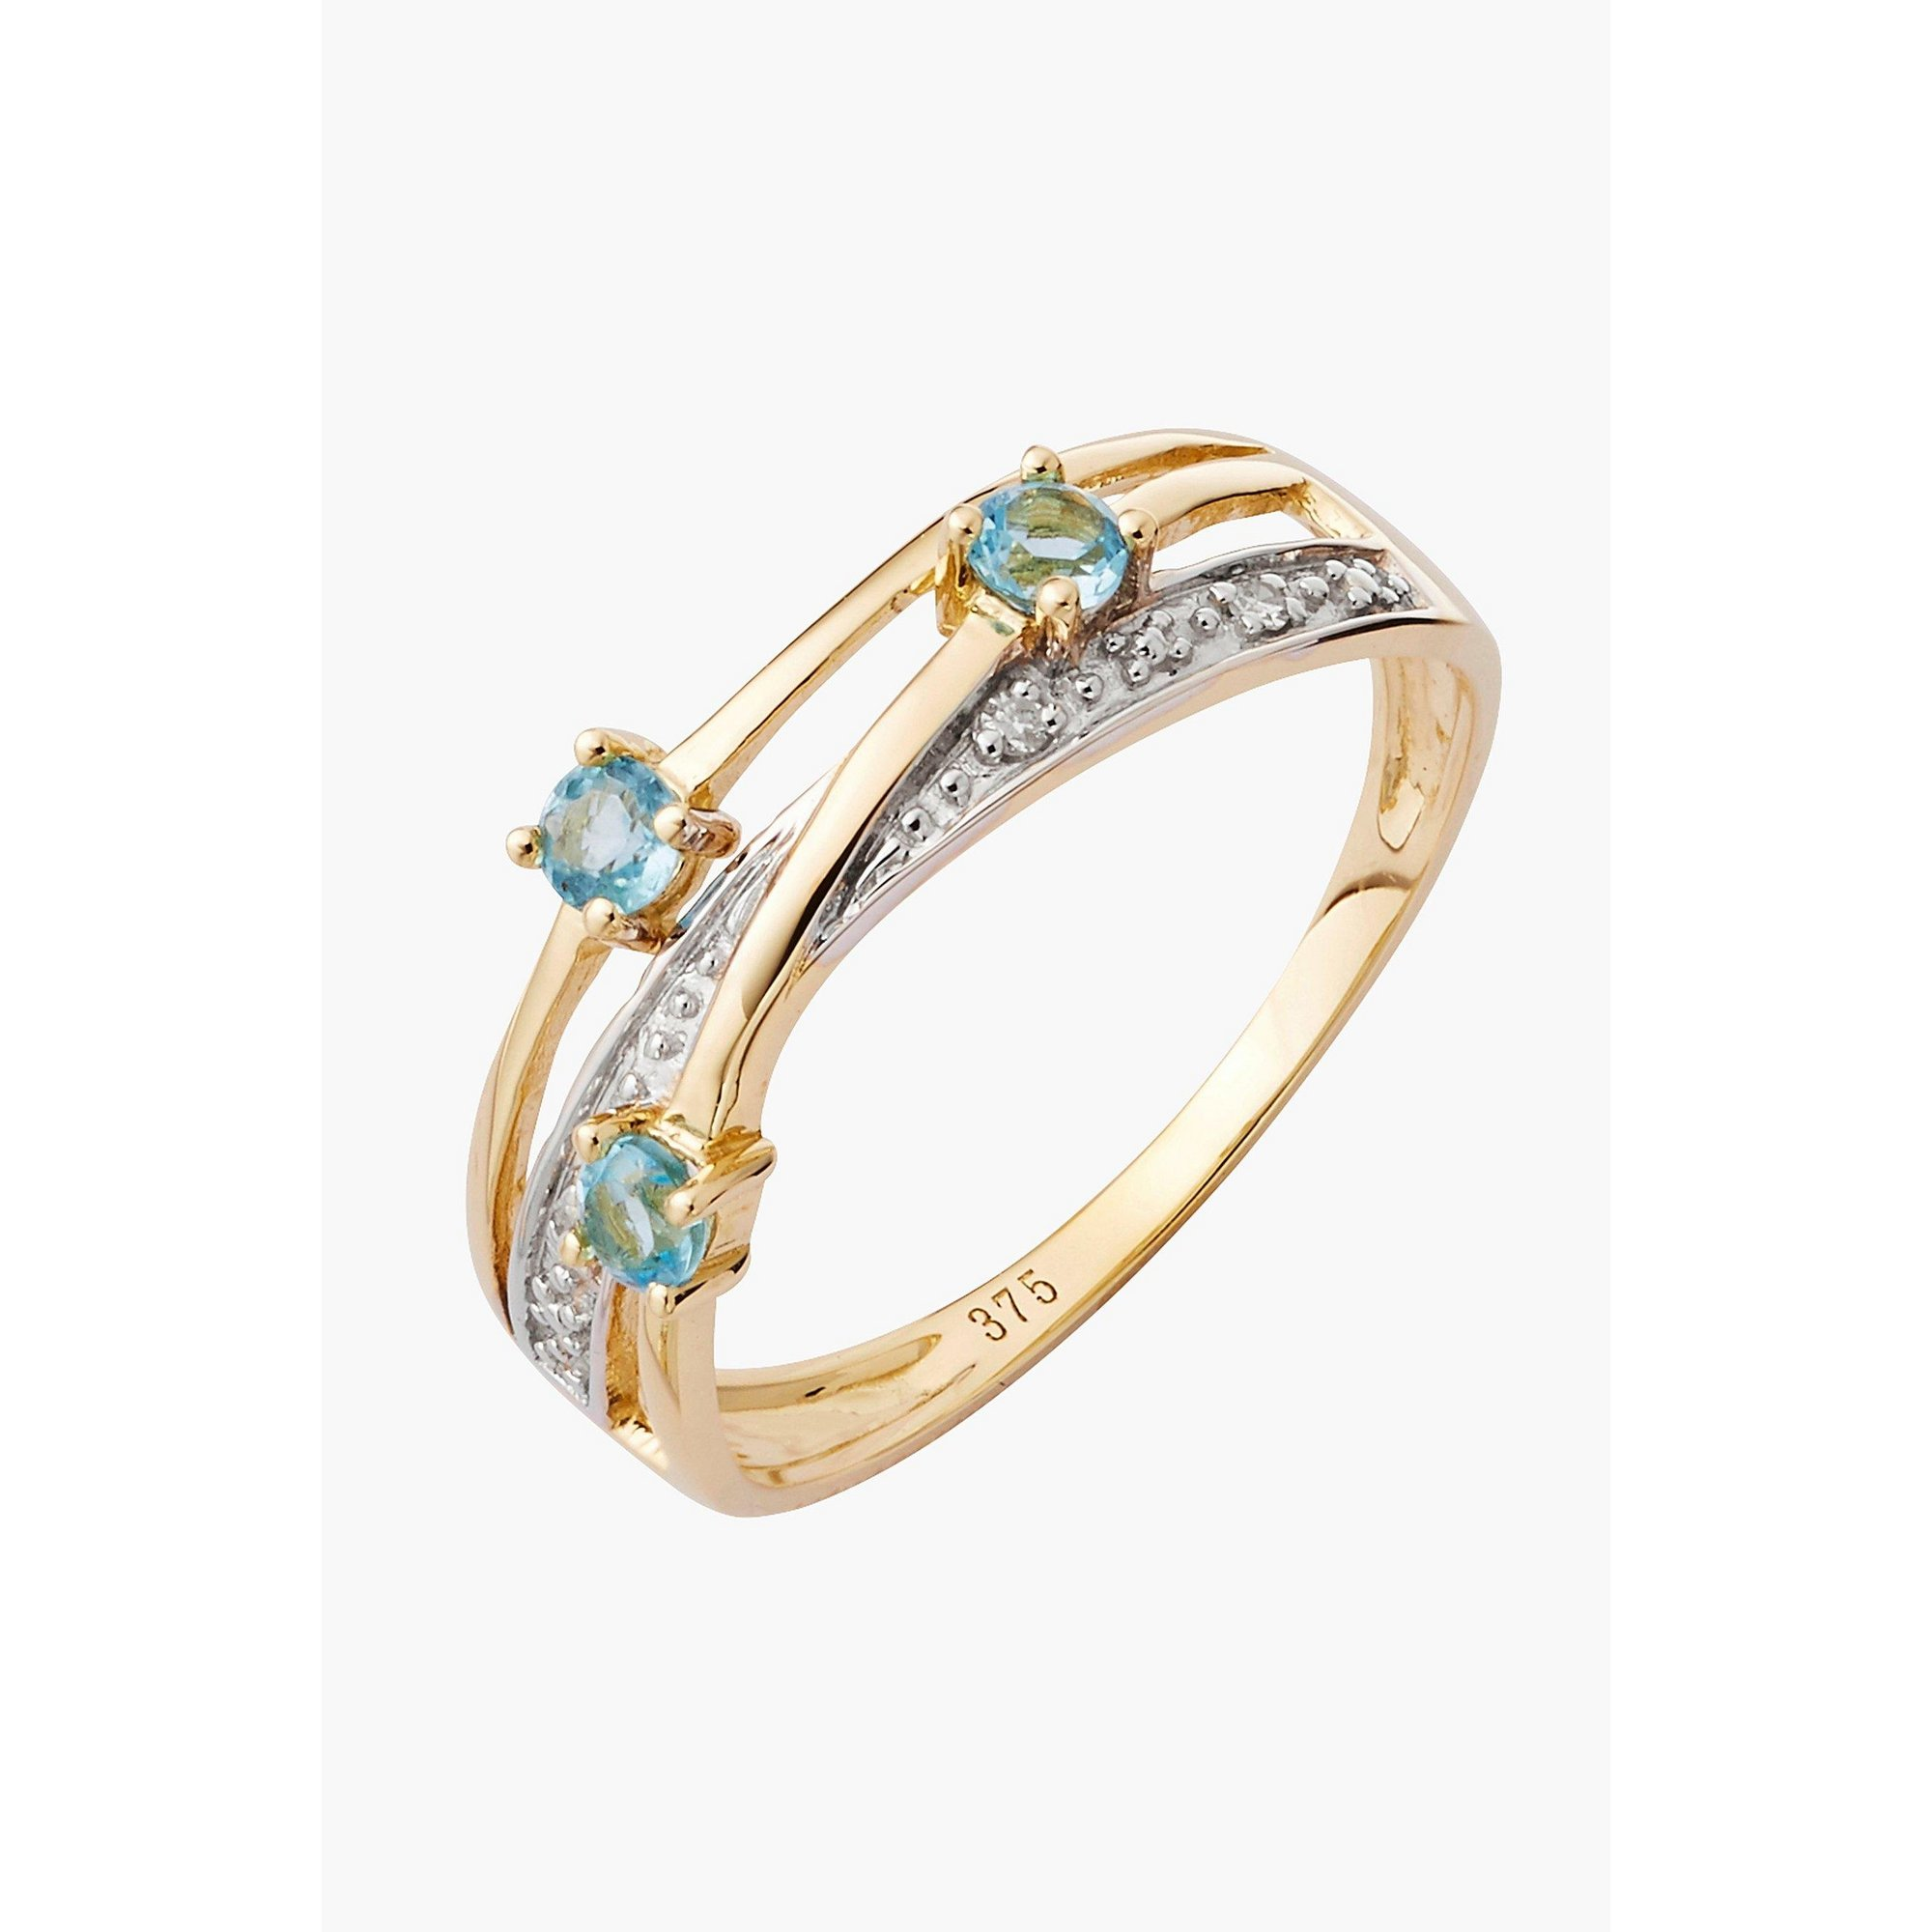 Image of 9ct Gold Blue Topaz and Diamond Dress Ring